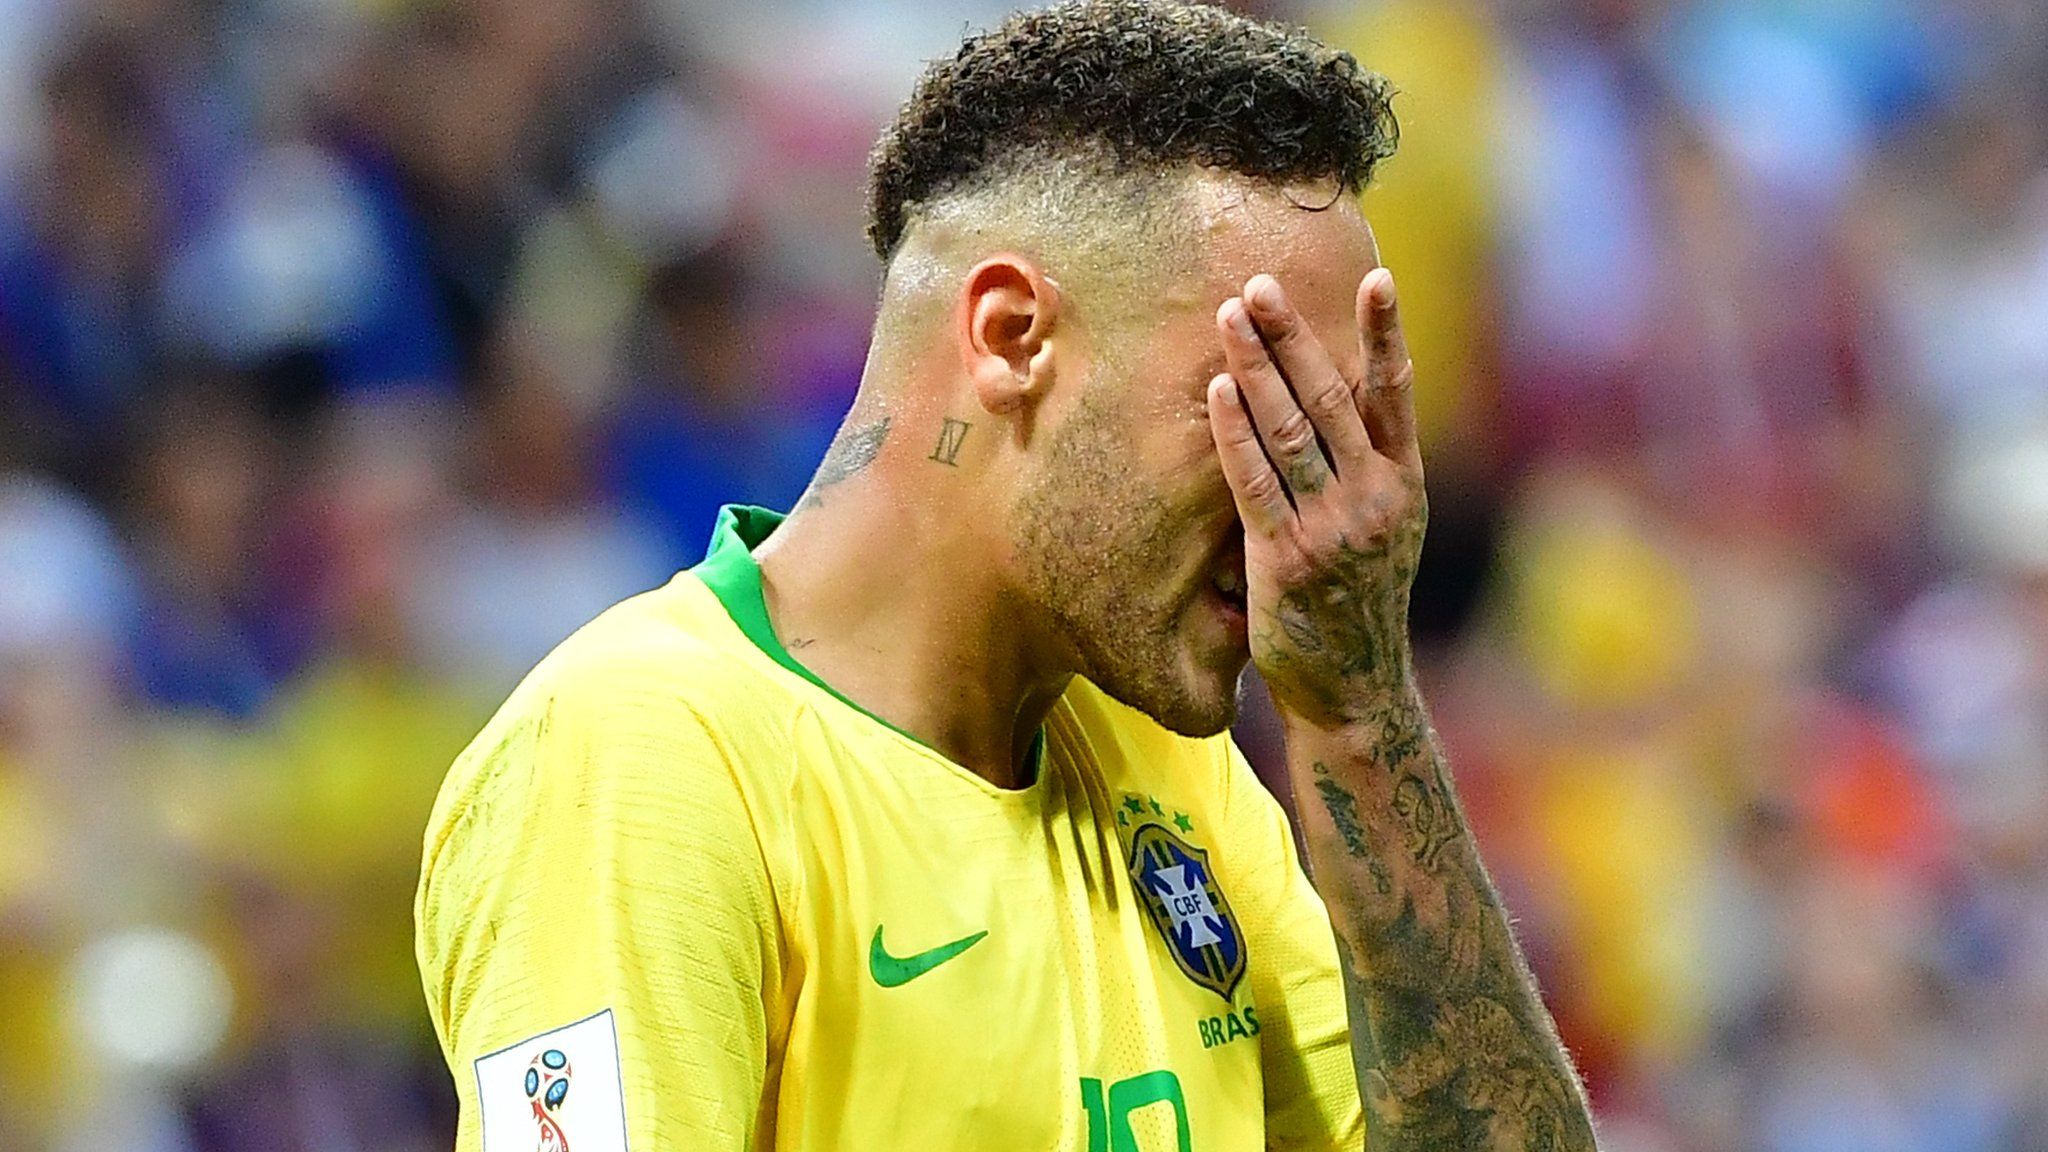 Neymar was in 'mourning' after World Cup exit